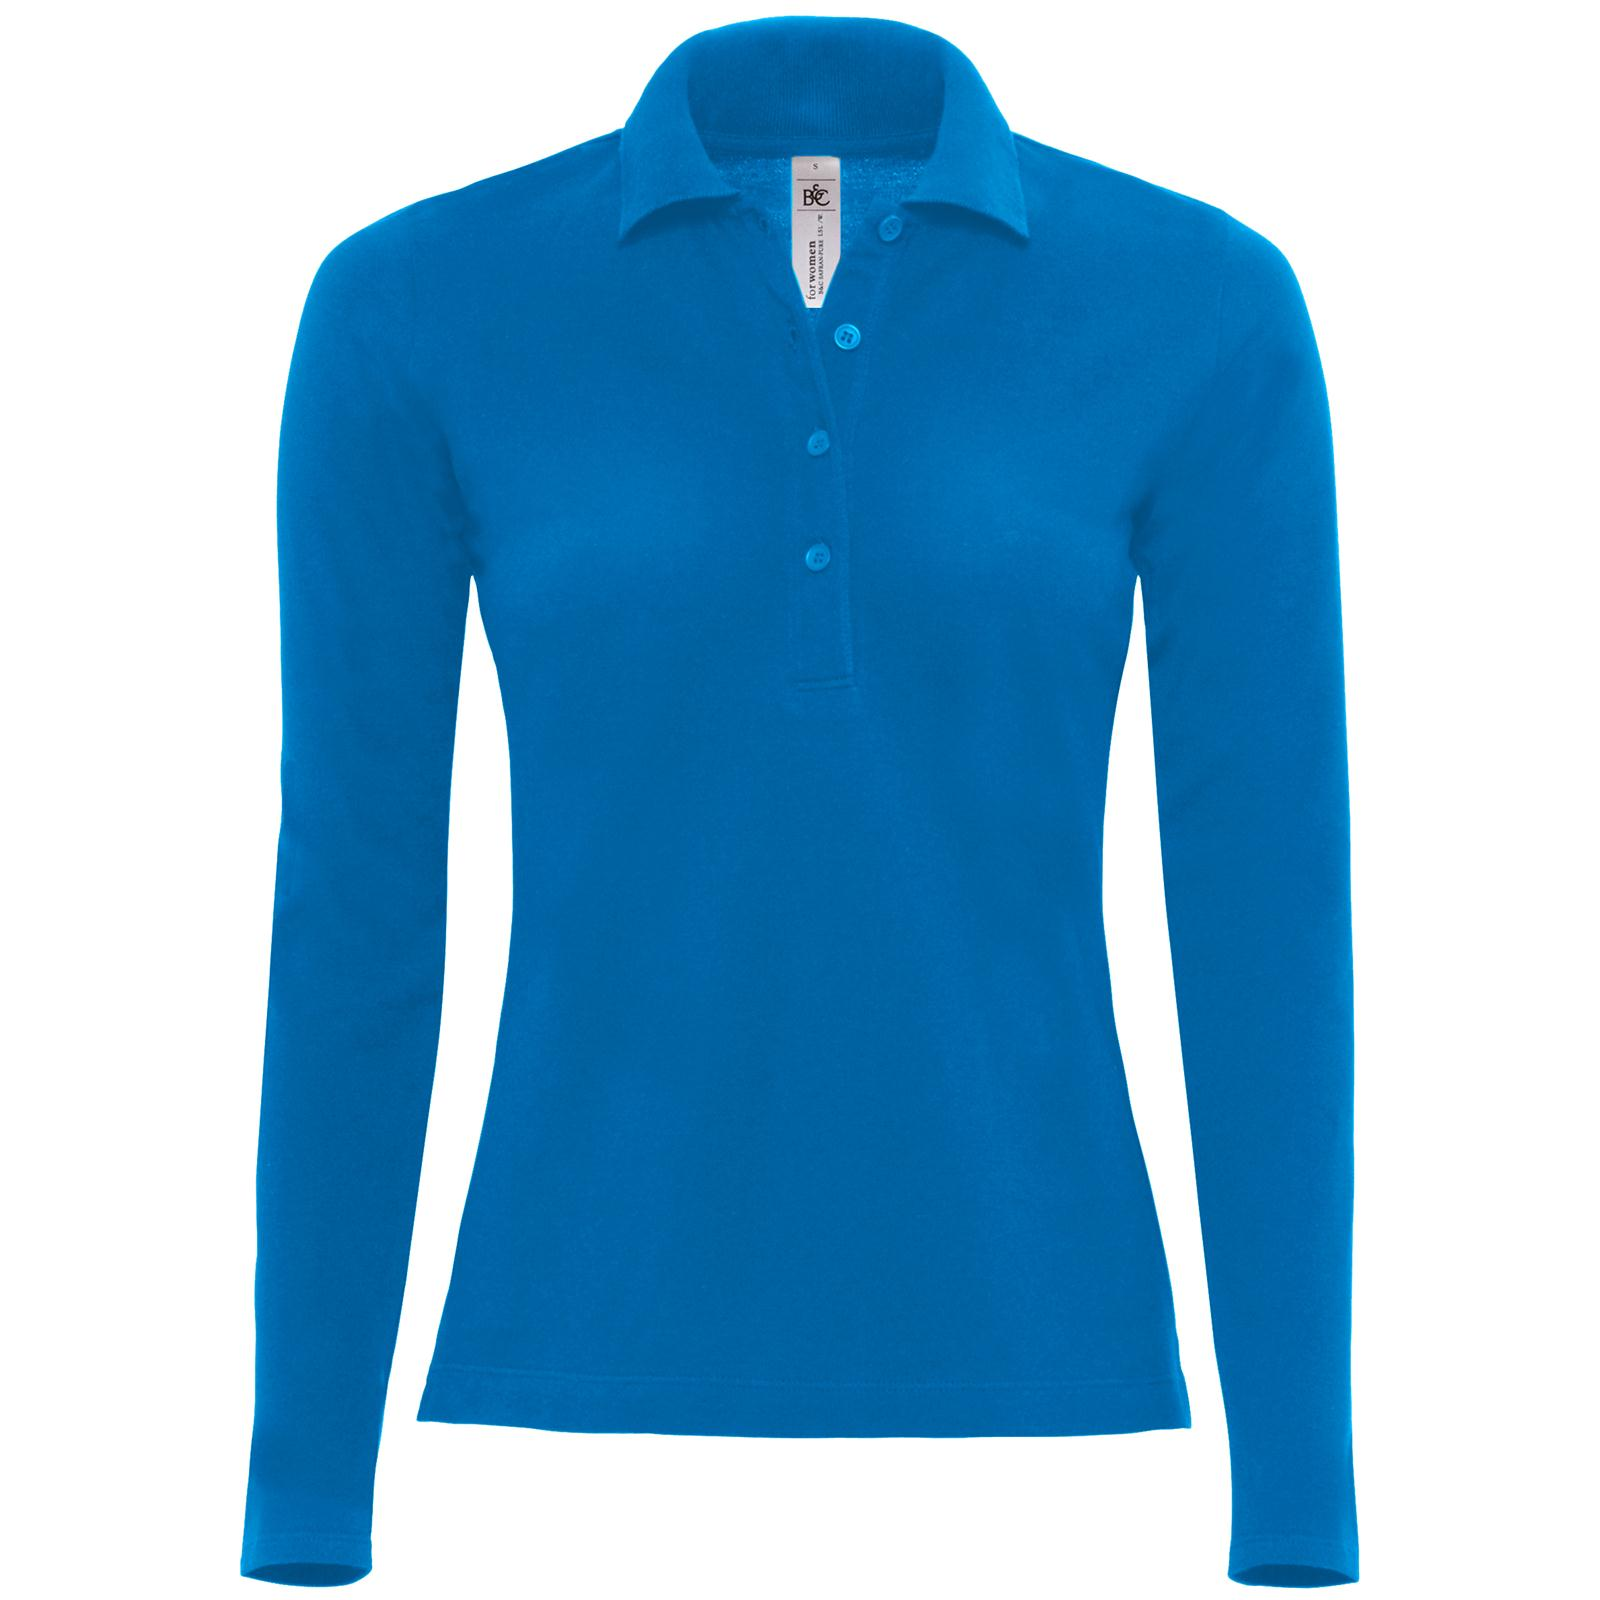 New B C Womens Ladies Safran Cotton Long Sleeve Pique Polo